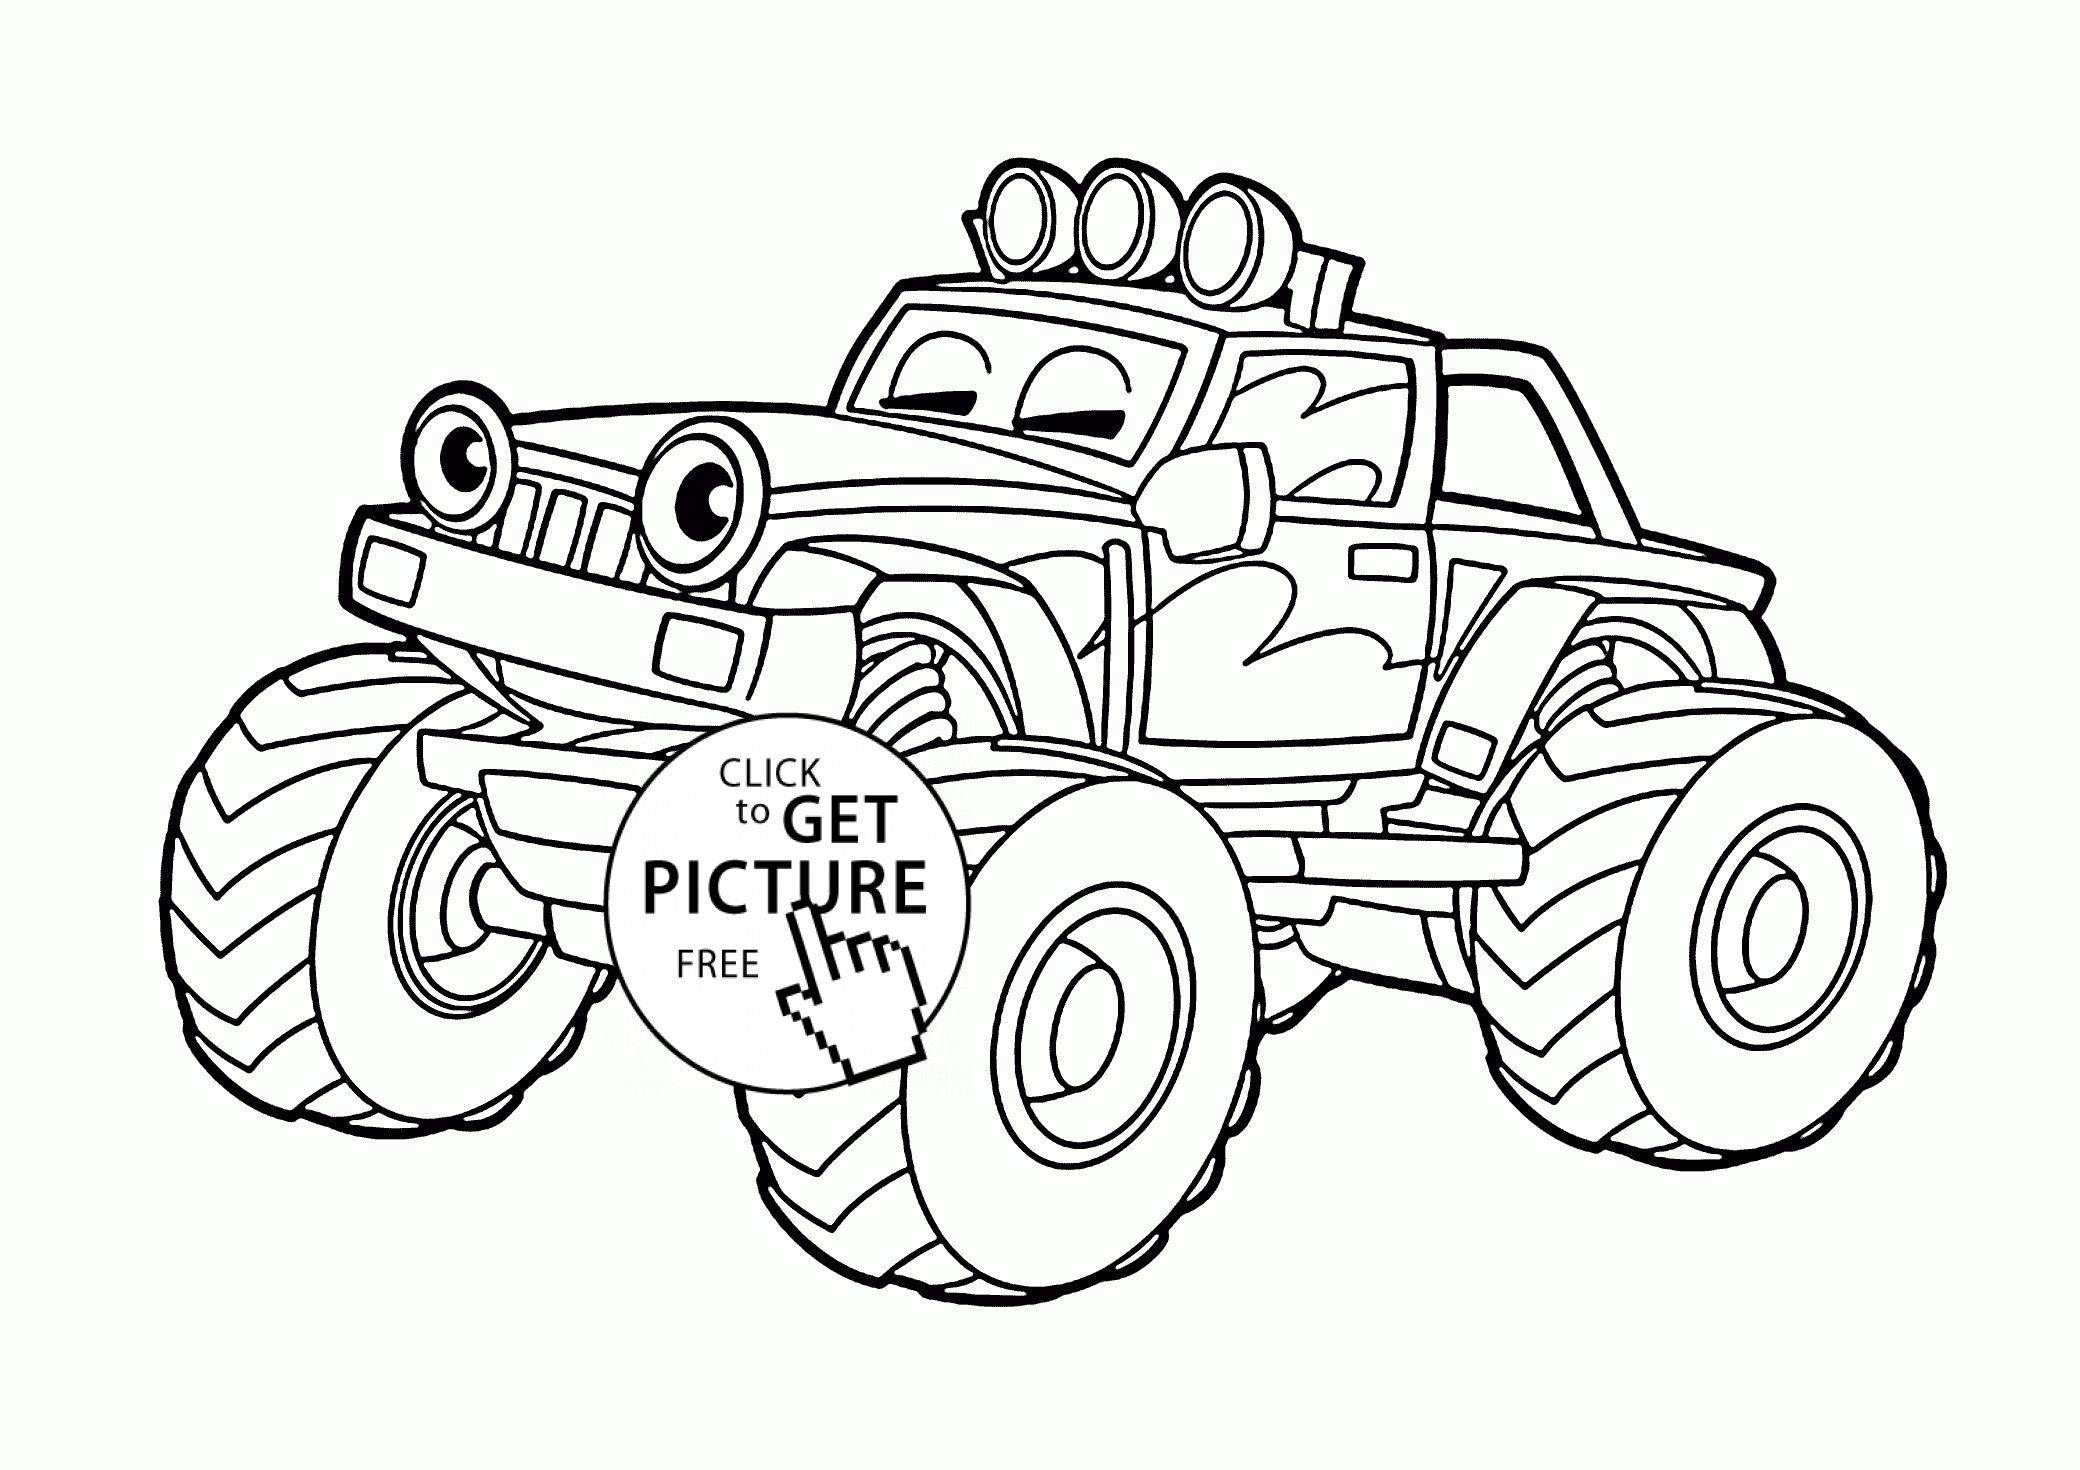 66 awesome image of blaze coloring sheets